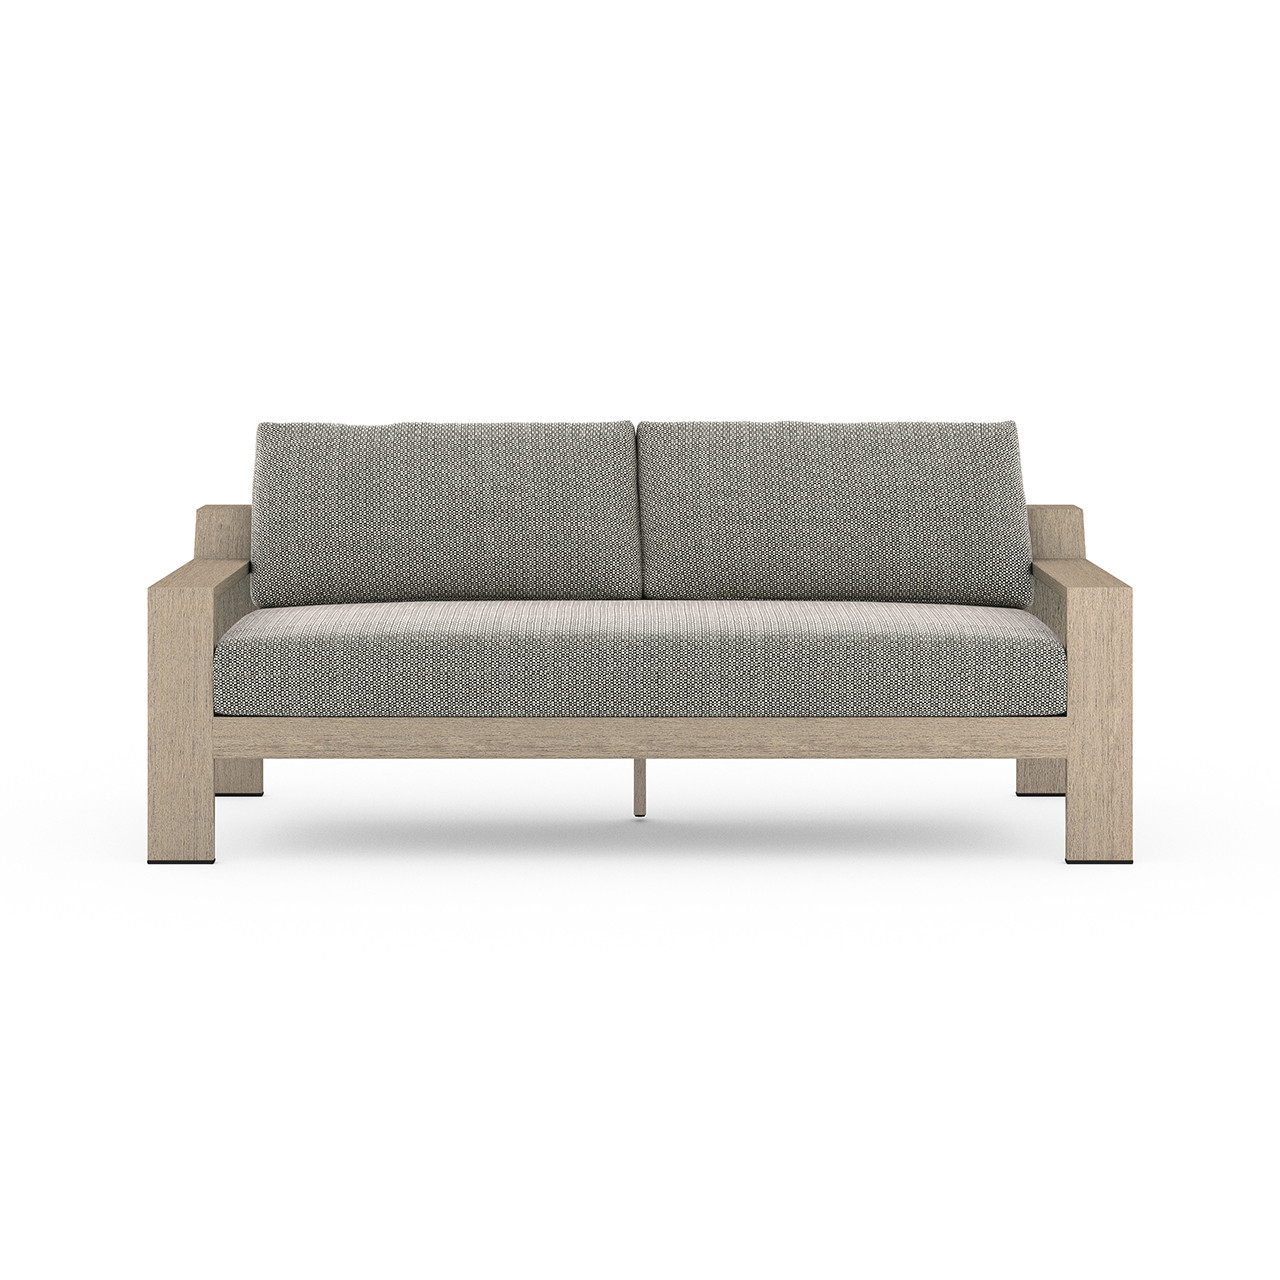 Hope Ranch Teak Outdoor Sofas - Washed Brown